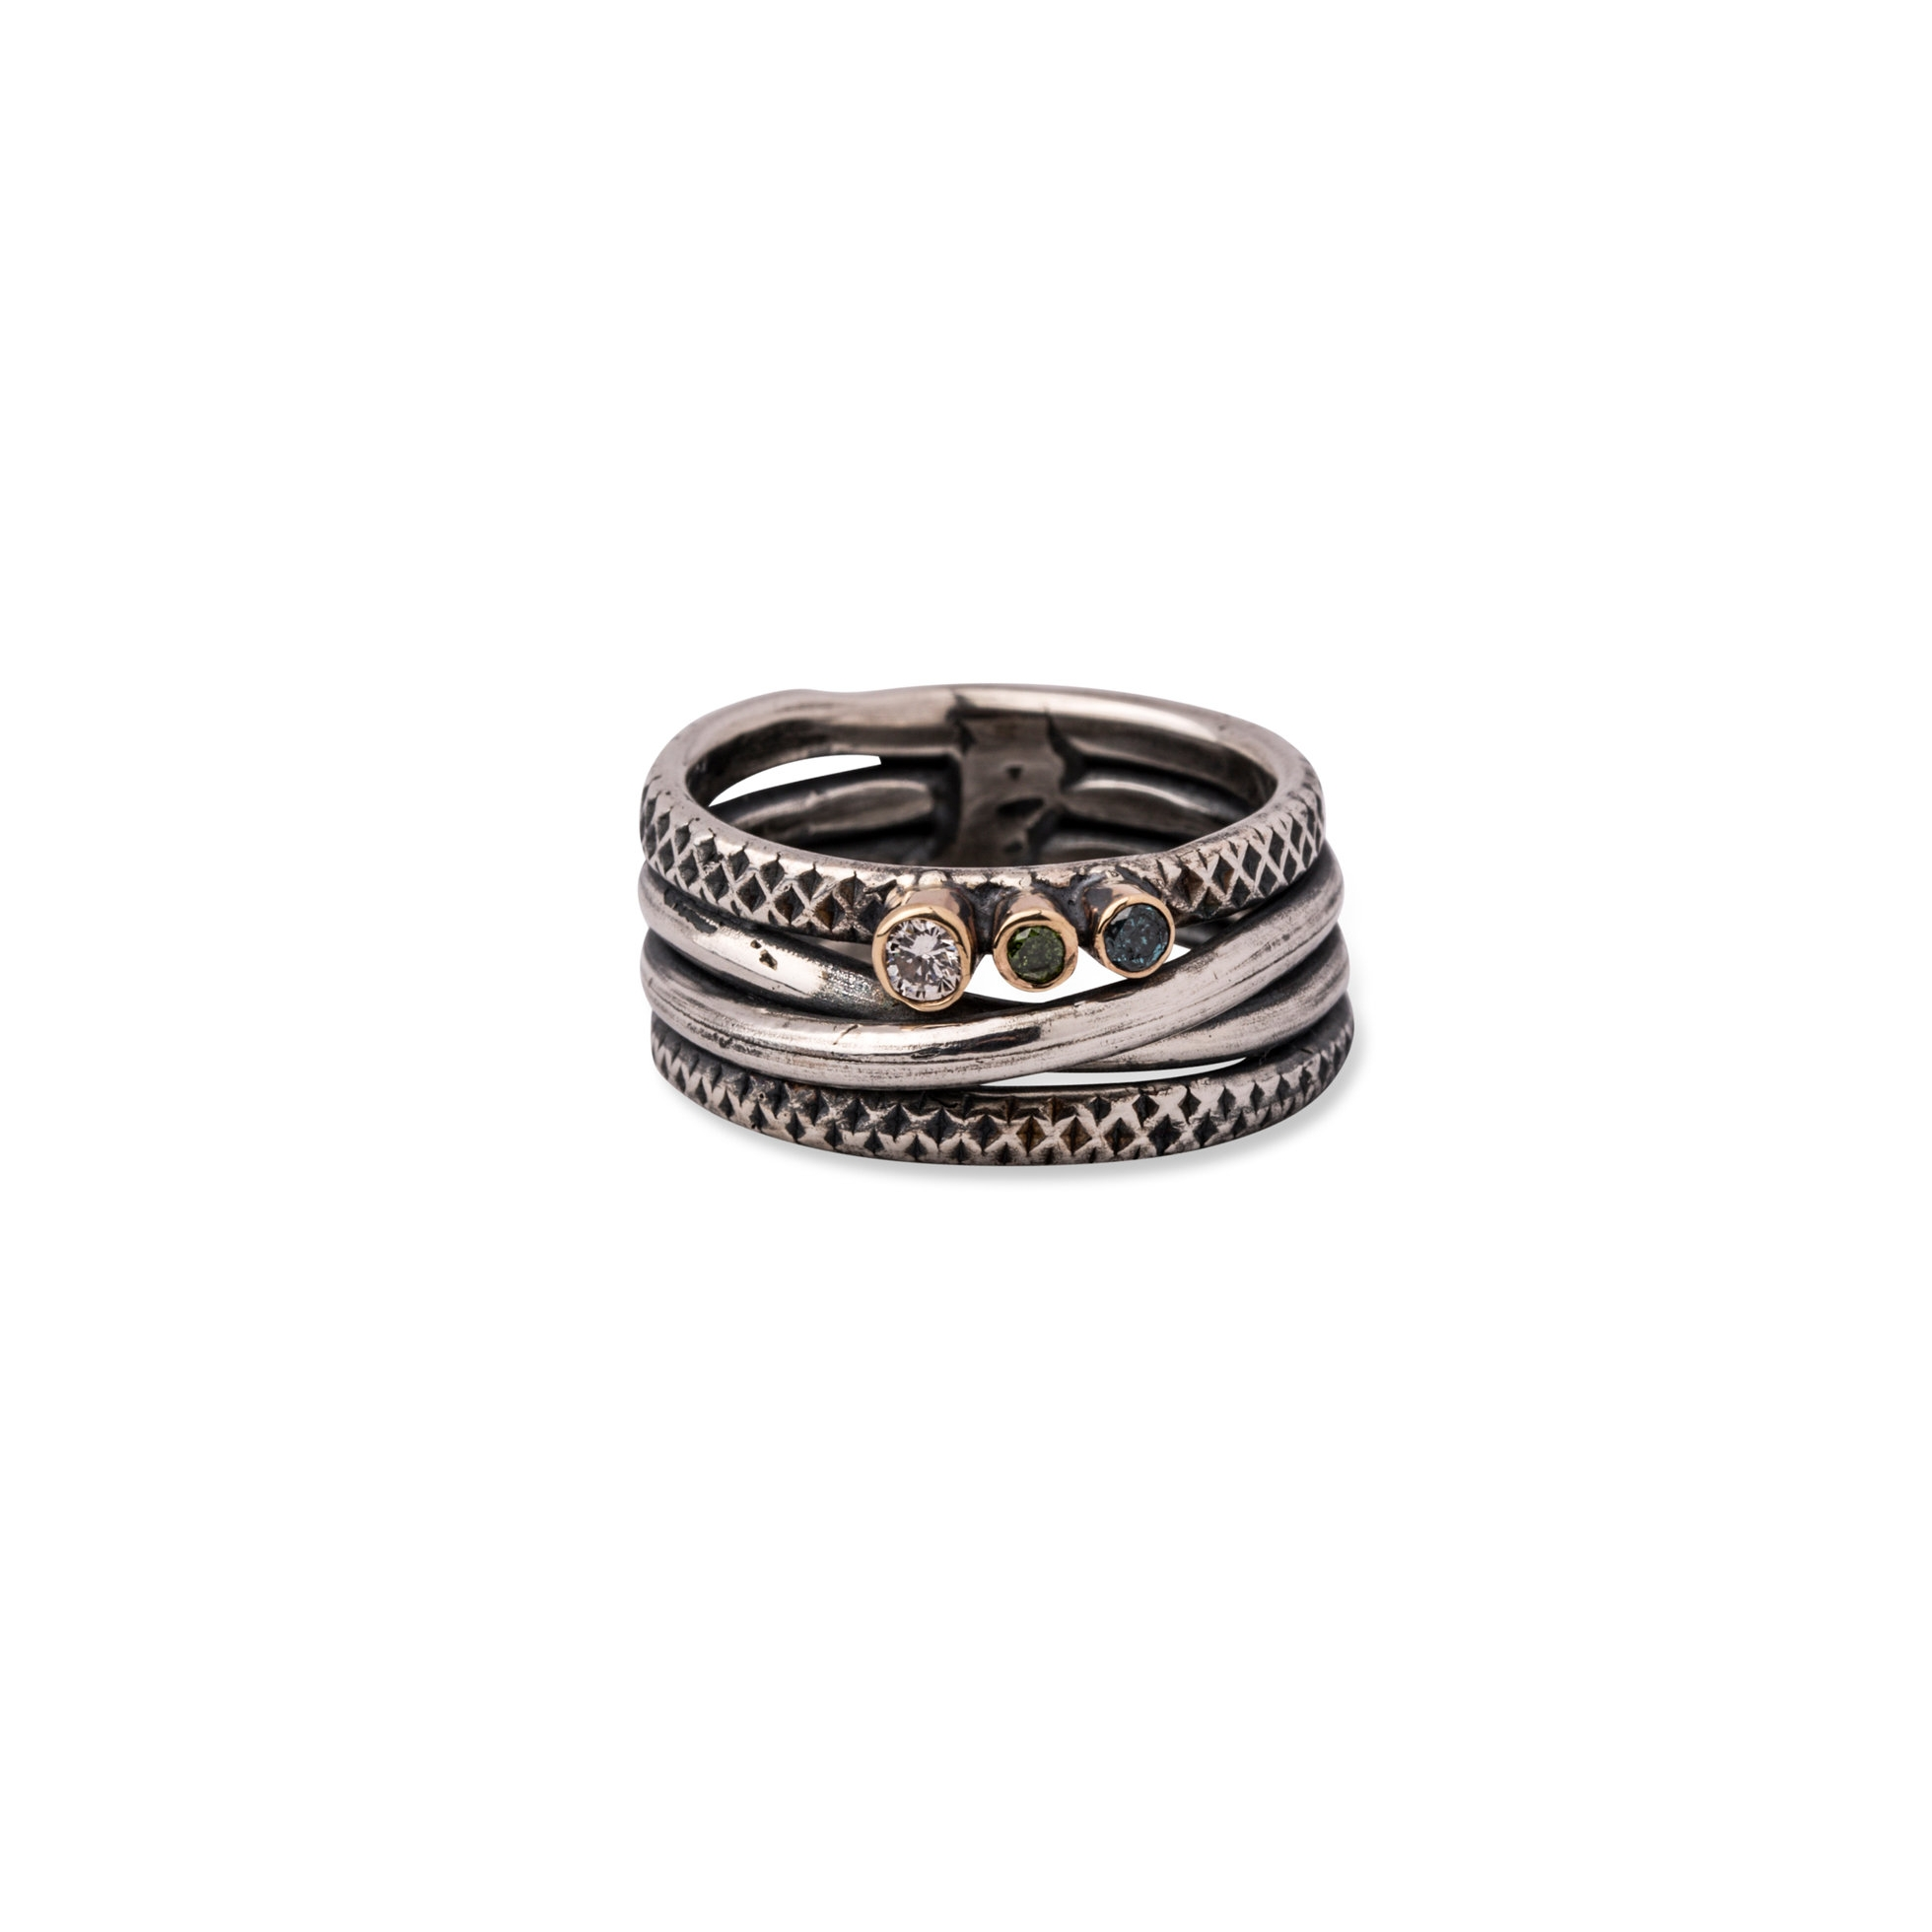 ring_lace_cup_16228.JPG